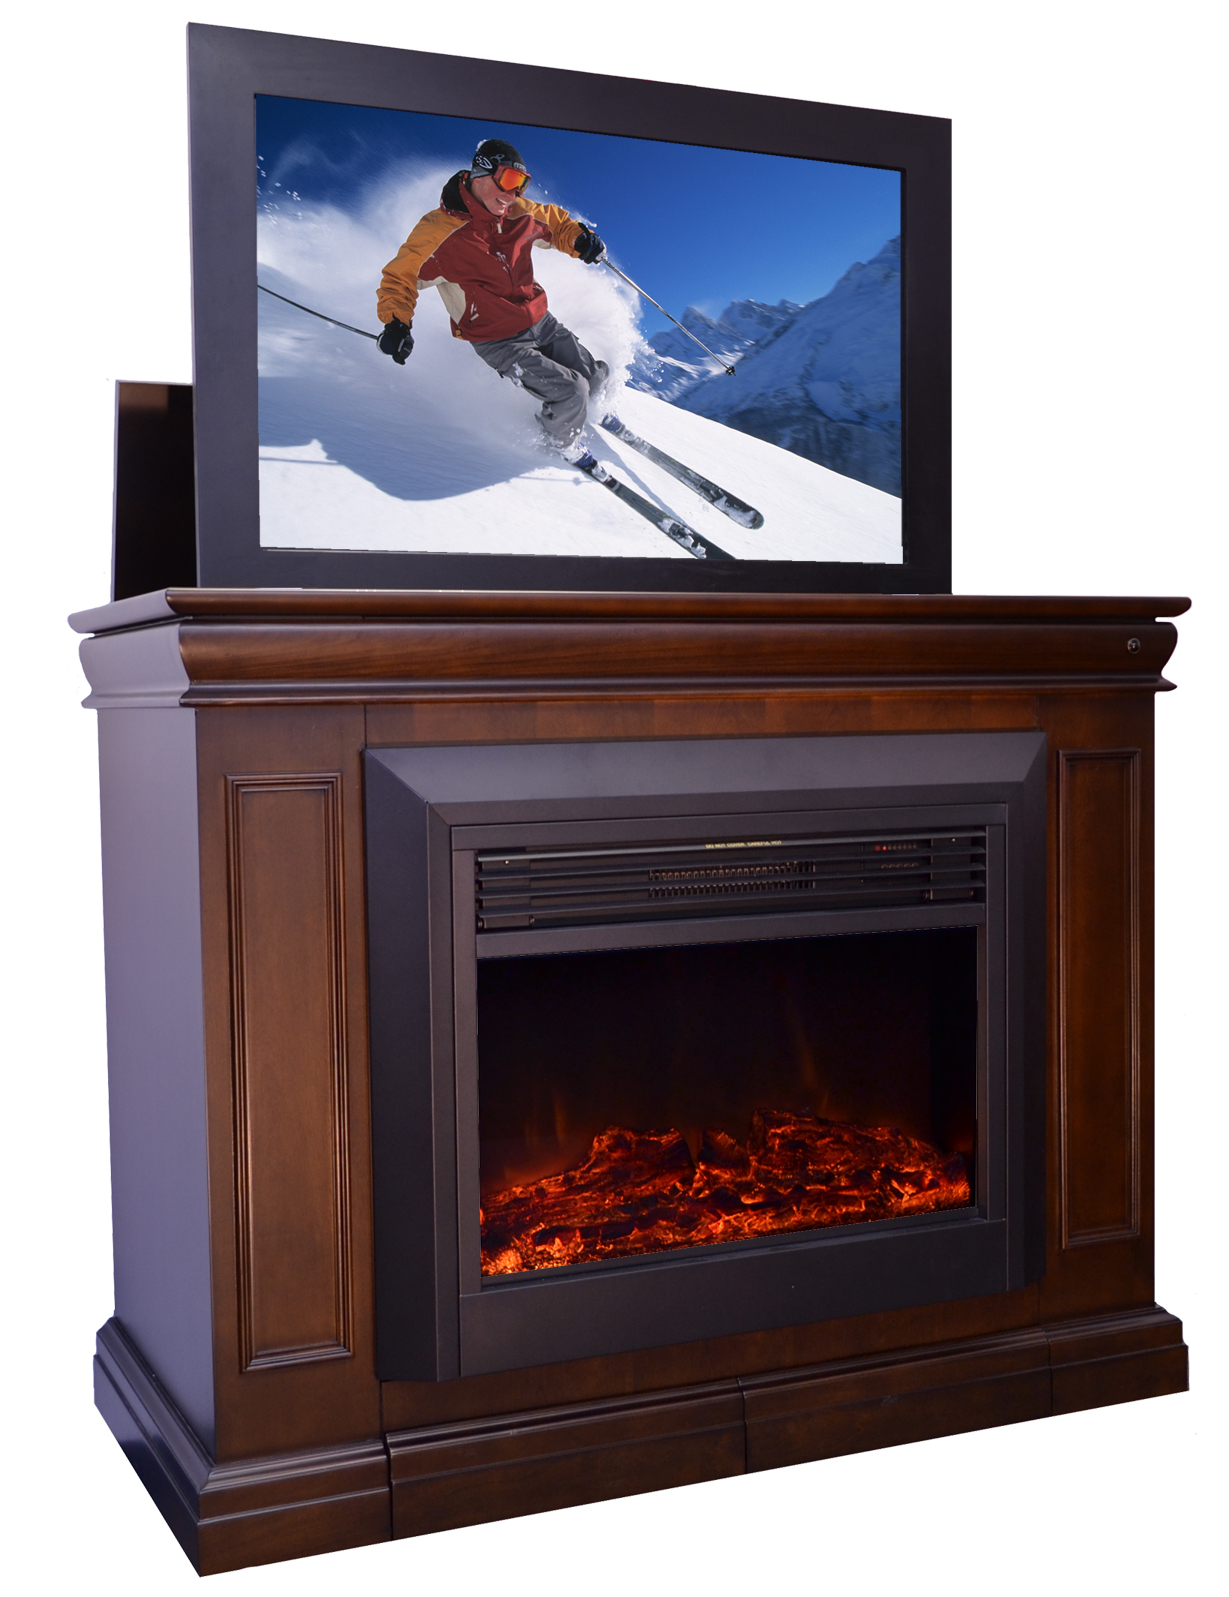 The Conestoga TV Lift Cabinet with Electric Fireplace For